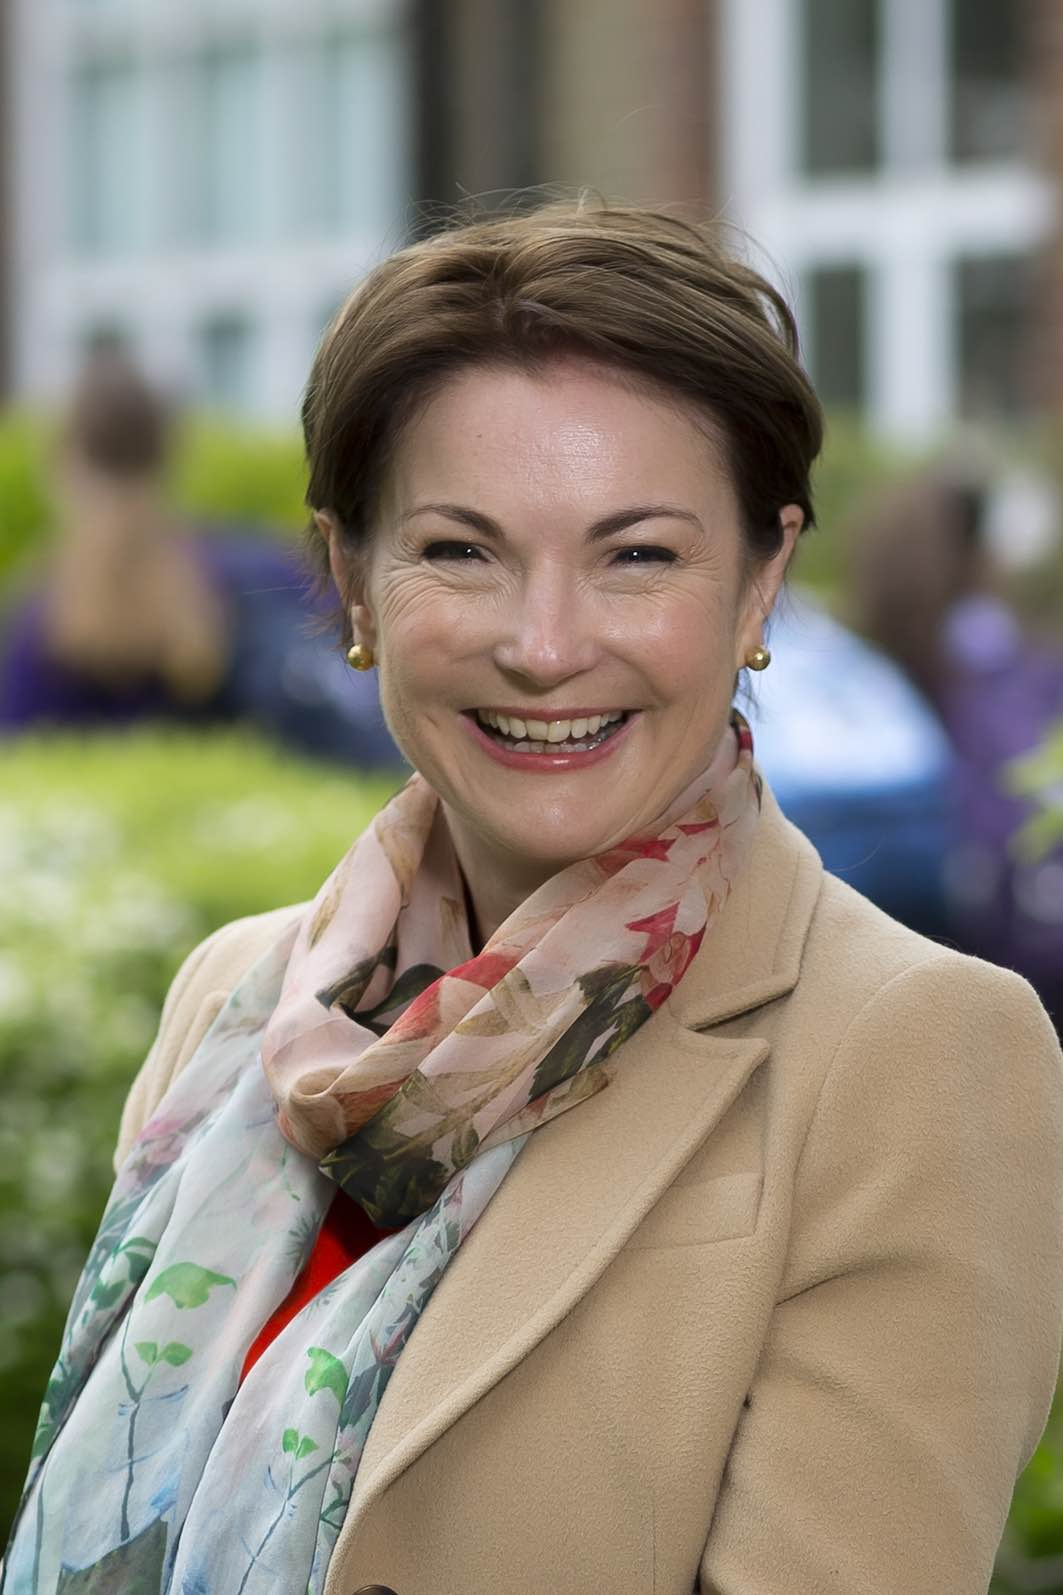 Gearing up for 11+? Here's a no nonsense perspective from Putney High's Headmistress